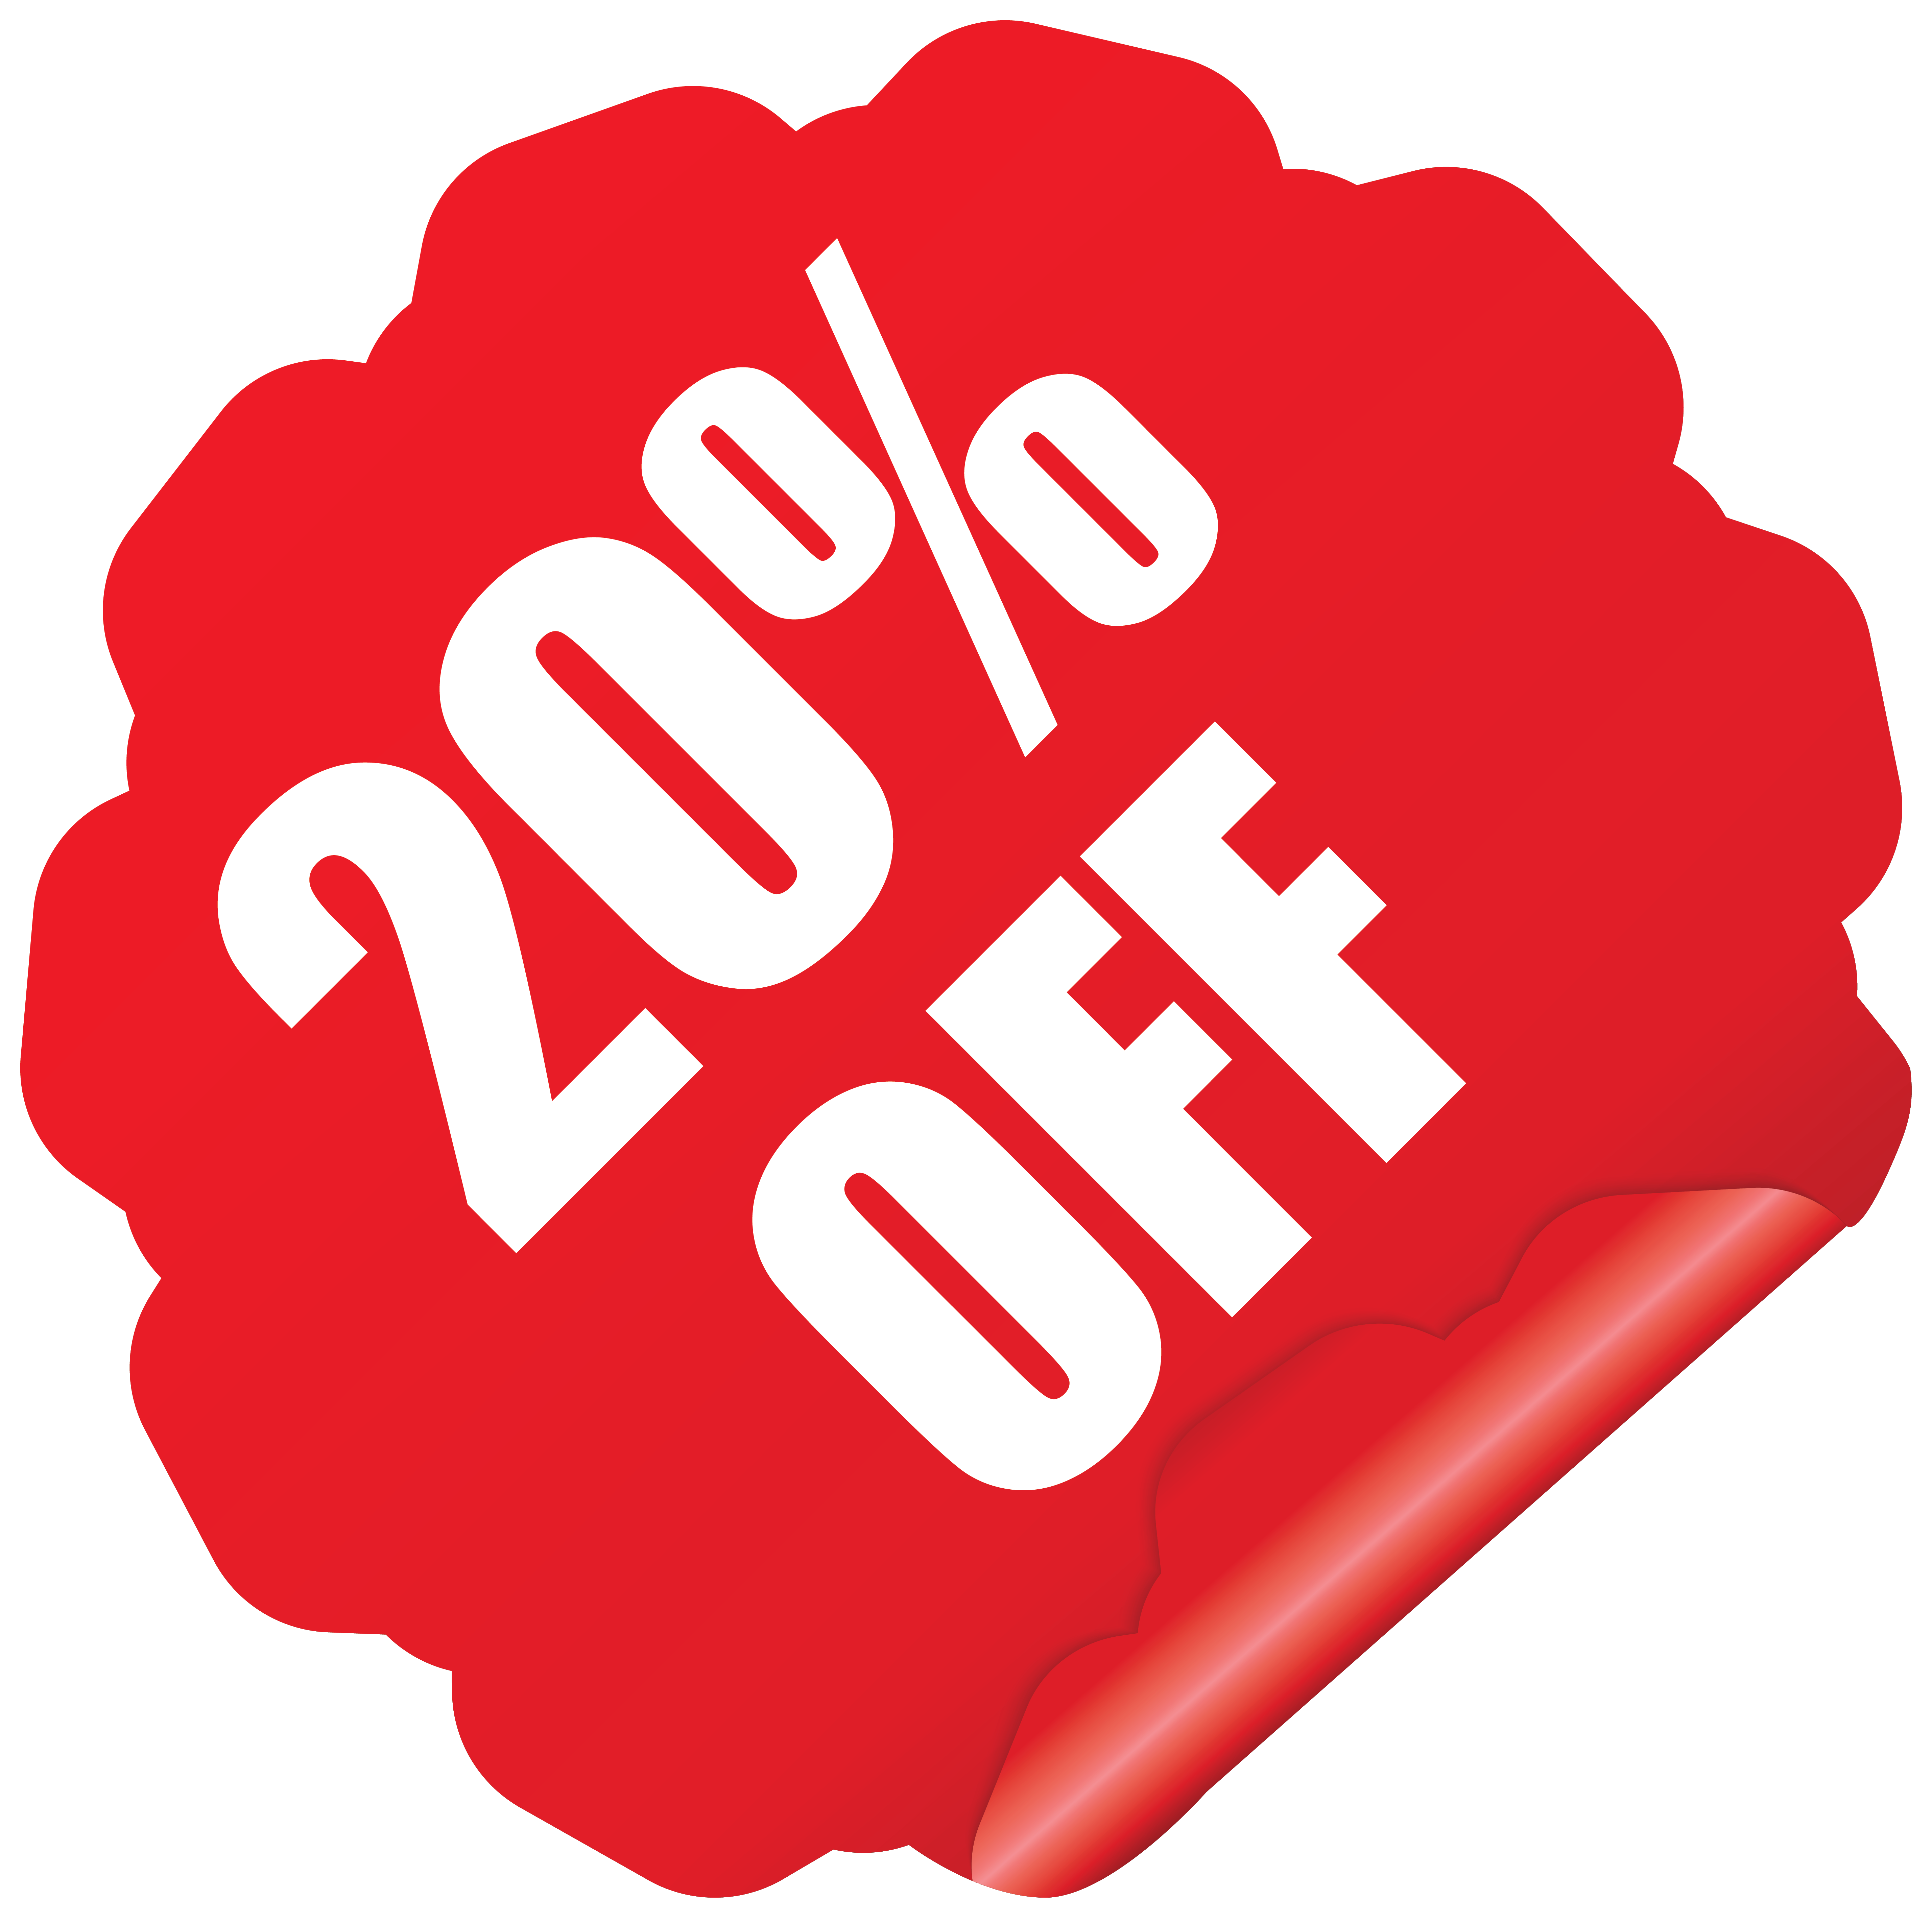 20% off sale png. Sticker clipart image